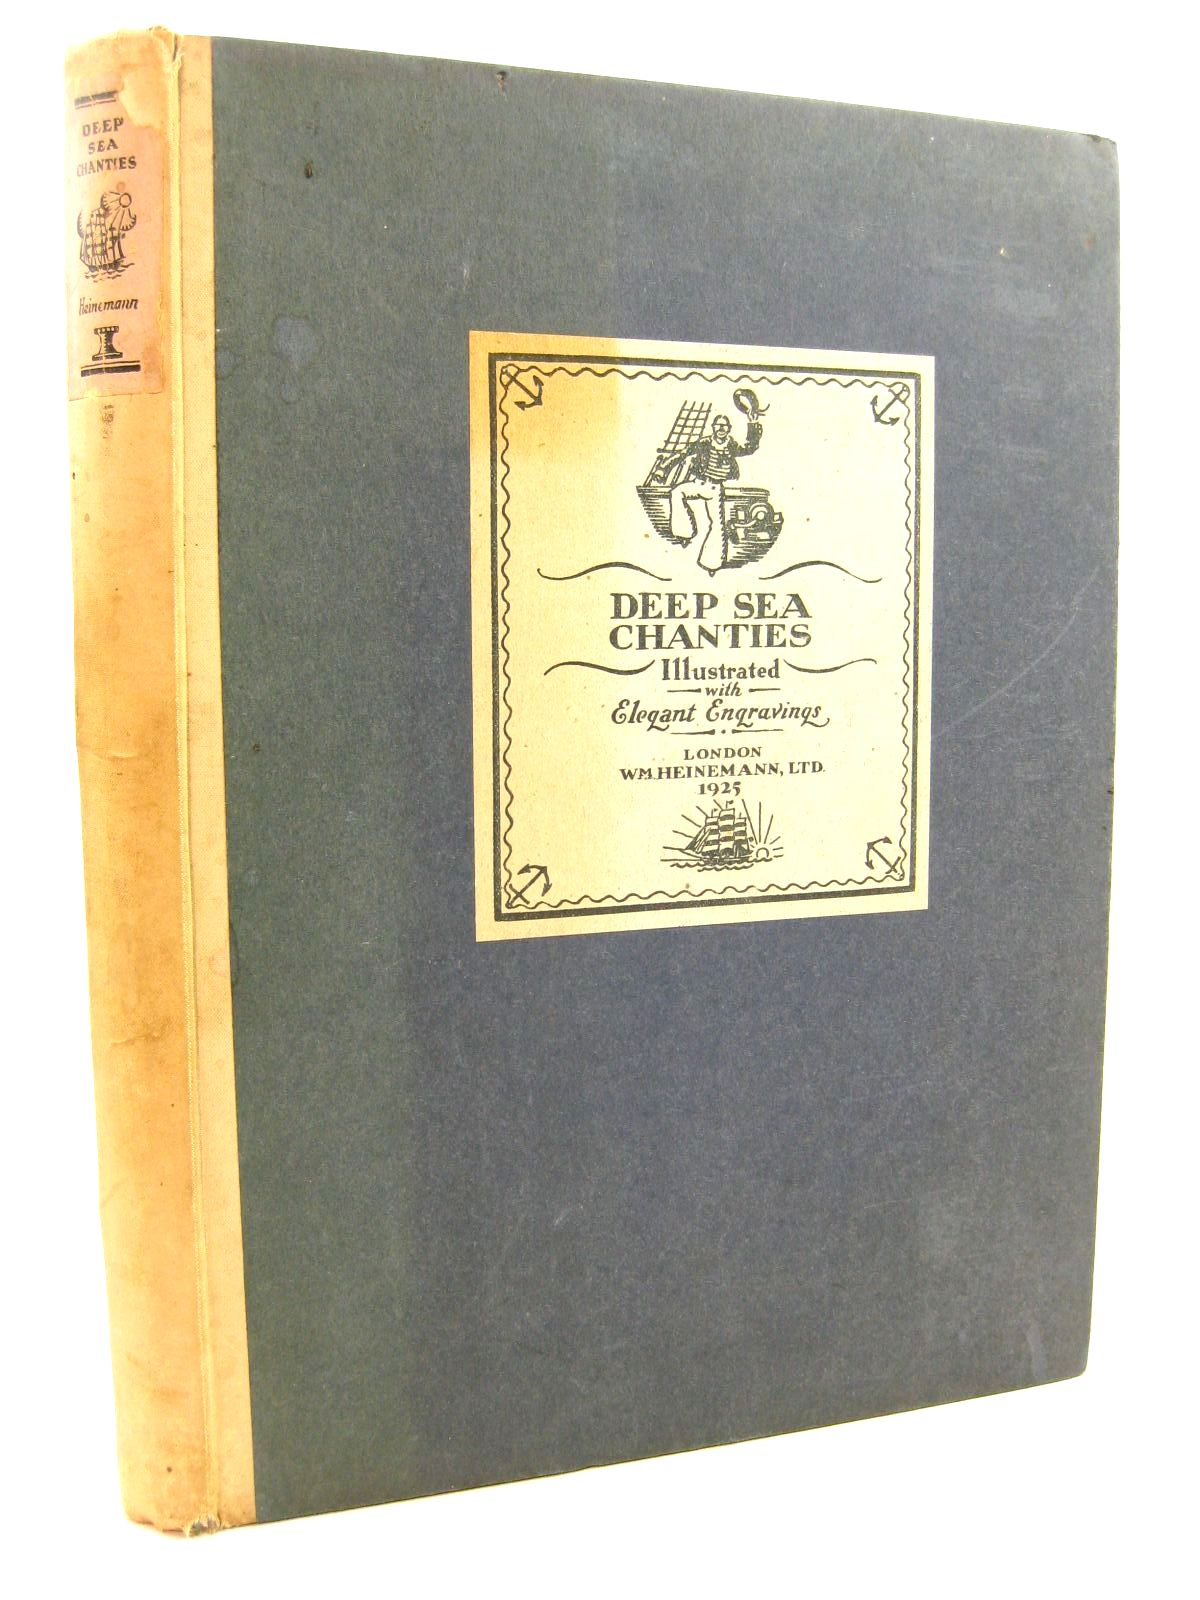 Photo of DEEP SEA CHANTIES written by Shay, Frank<br />McFee, William illustrated by Wilson, Edward A. published by William Heinemann Ltd. (STOCK CODE: 1316787)  for sale by Stella & Rose's Books